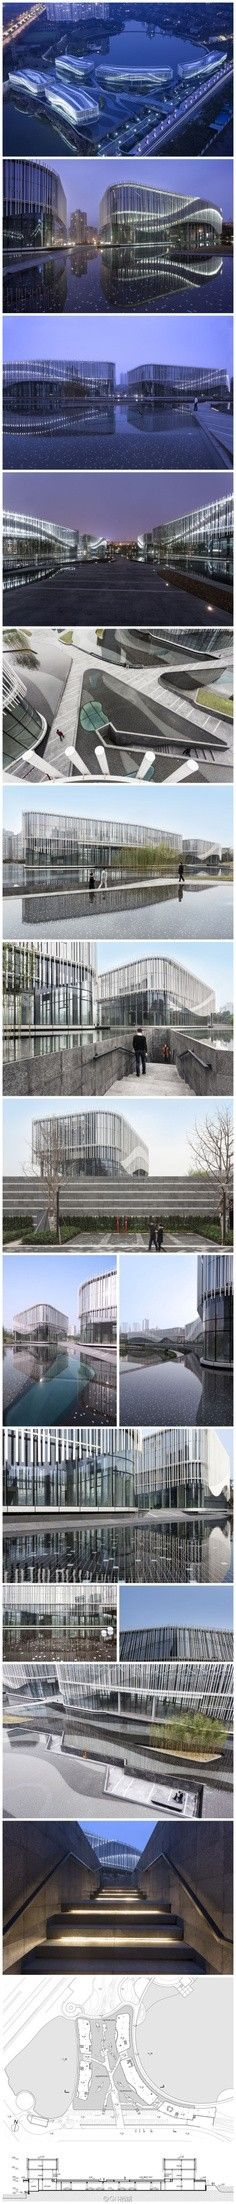 Palm Island project in Chong Quing, China. Hassell designer.